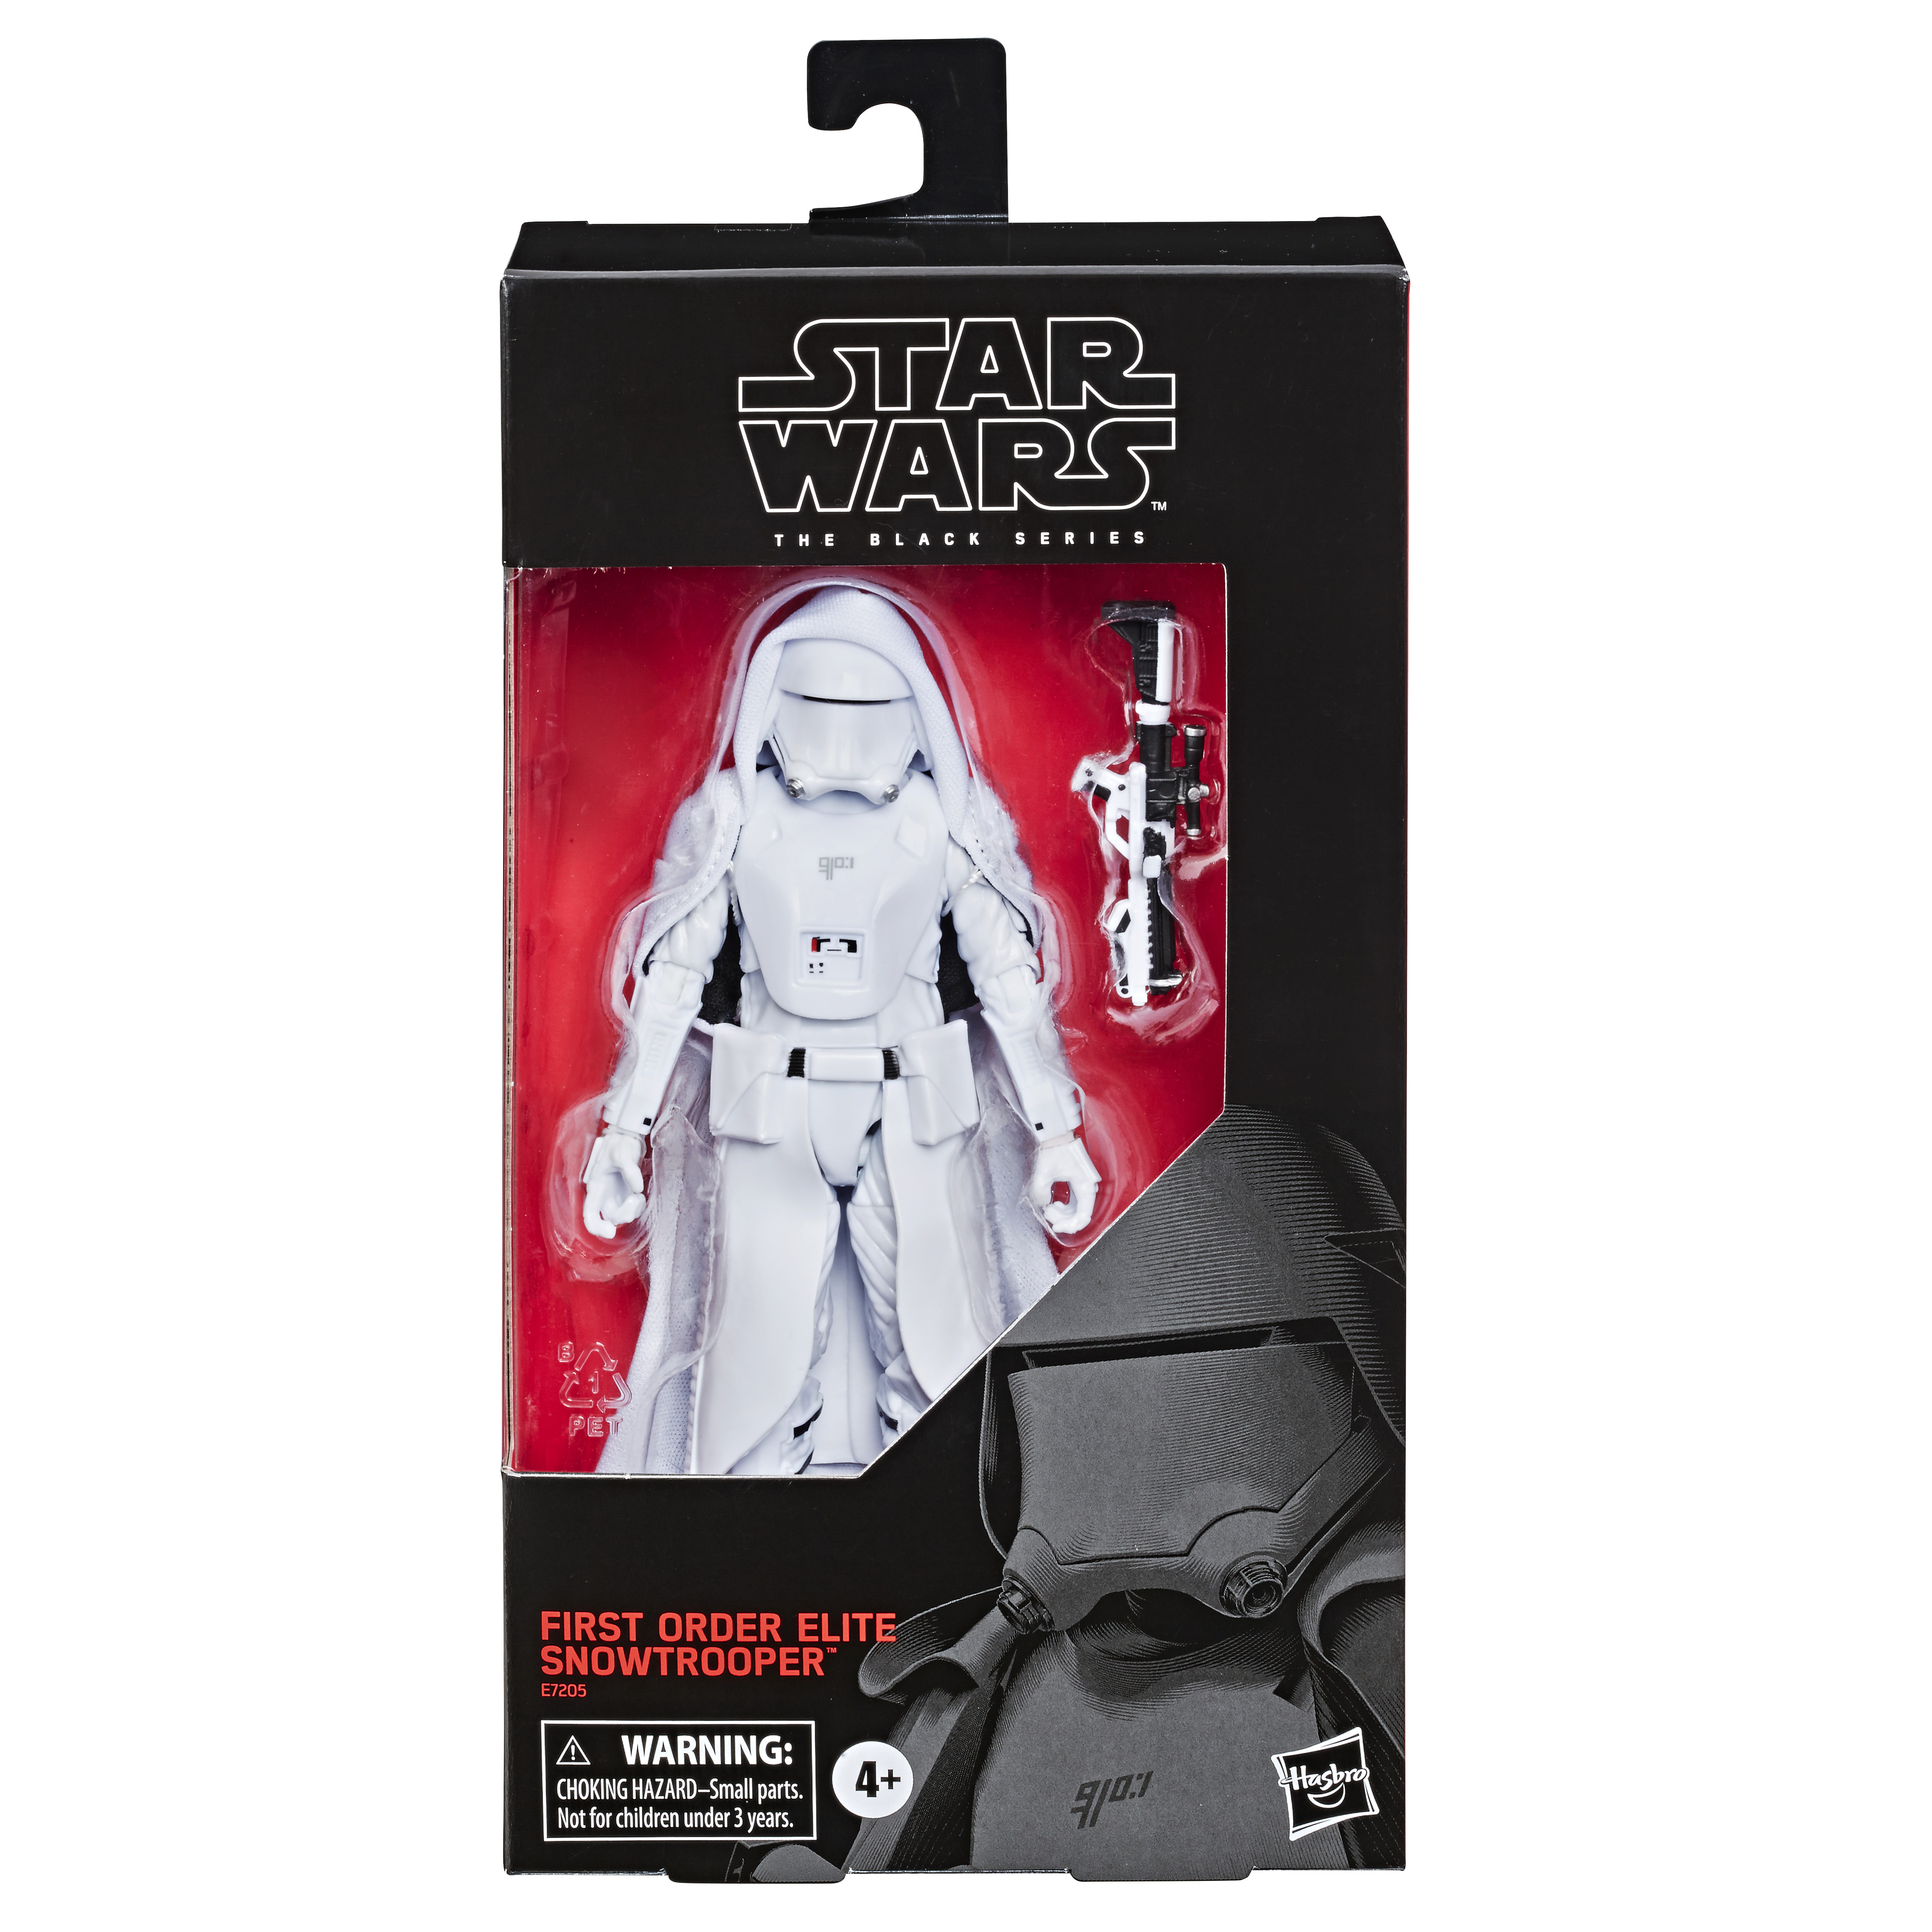 Star Wars Episode IX Black Series Actionfigur First Order Elite Snowtrooper Exclusive 15 cm E7205 5010993663866